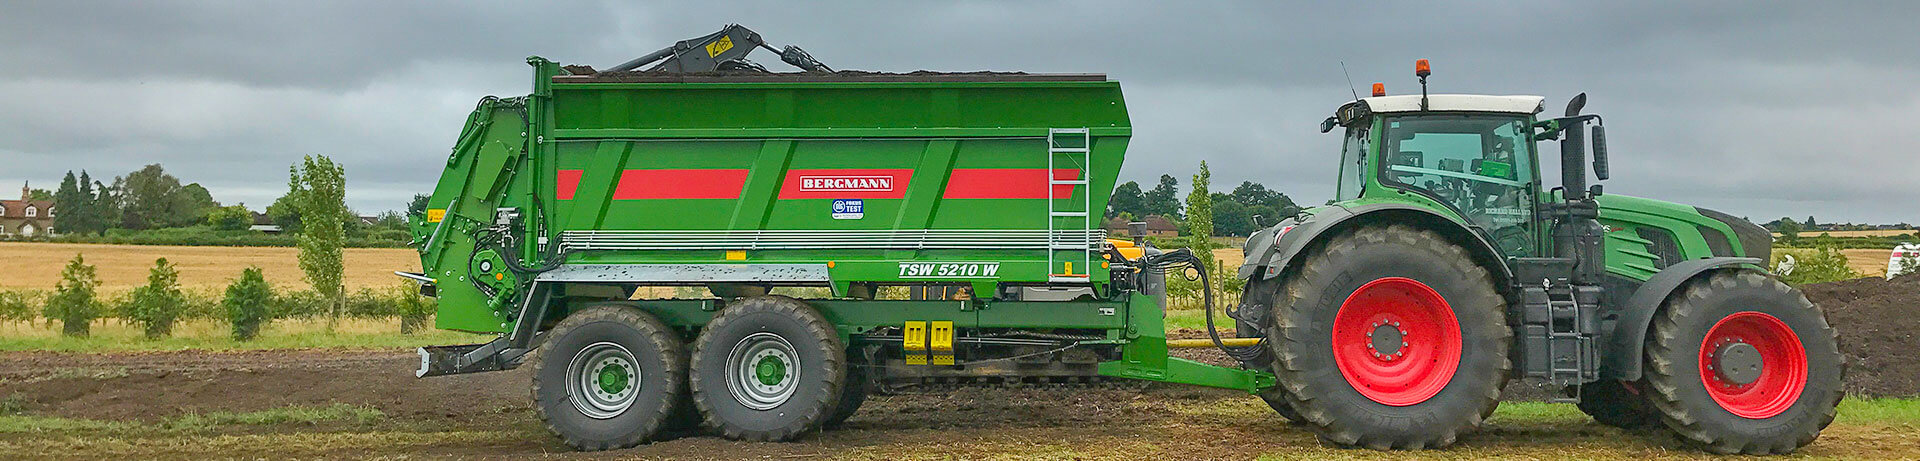 muck spreader being loaded by 360